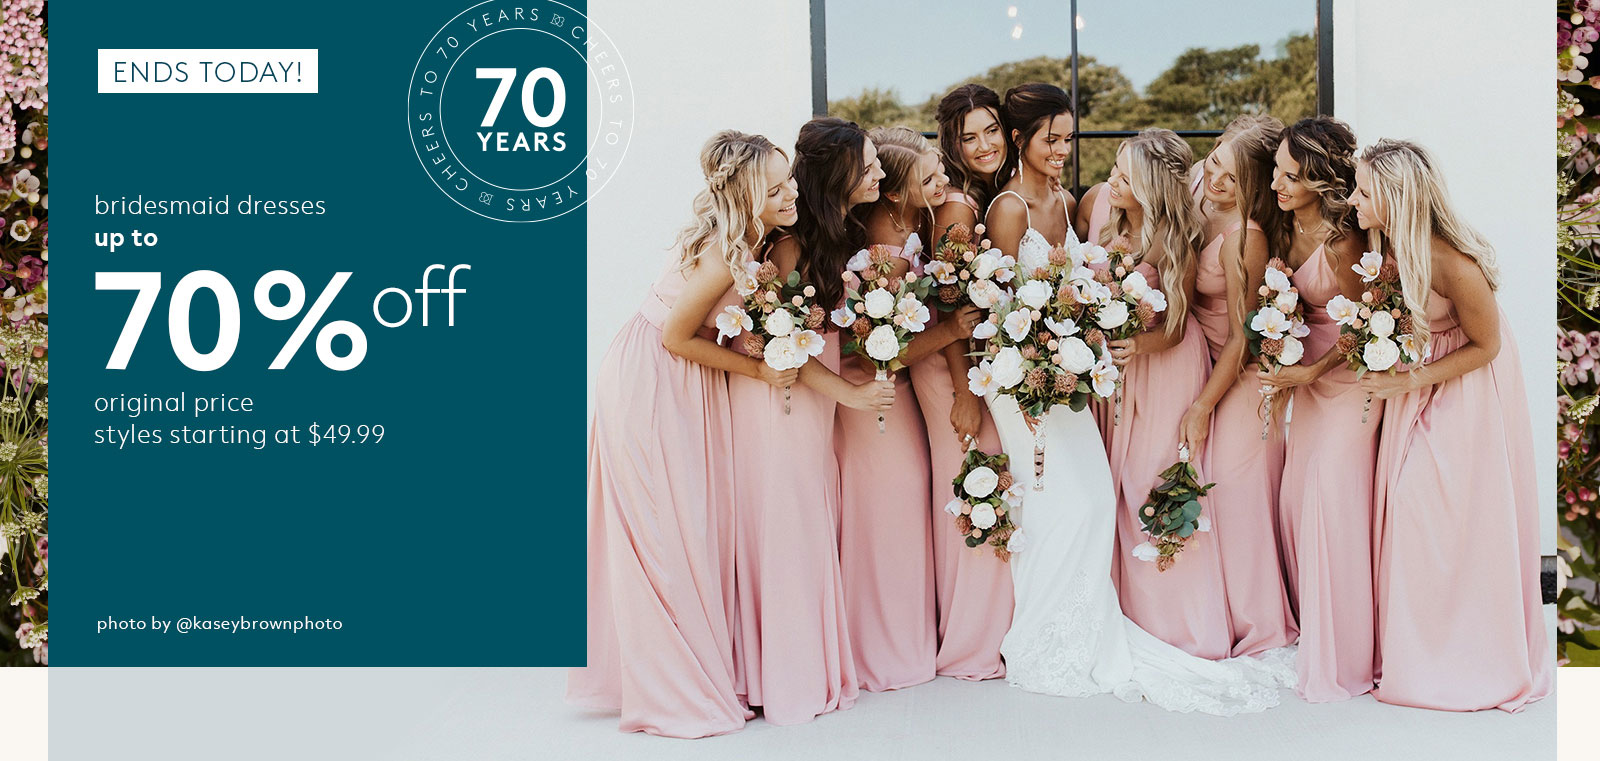 bridesmaid dresses up to 70% off original price